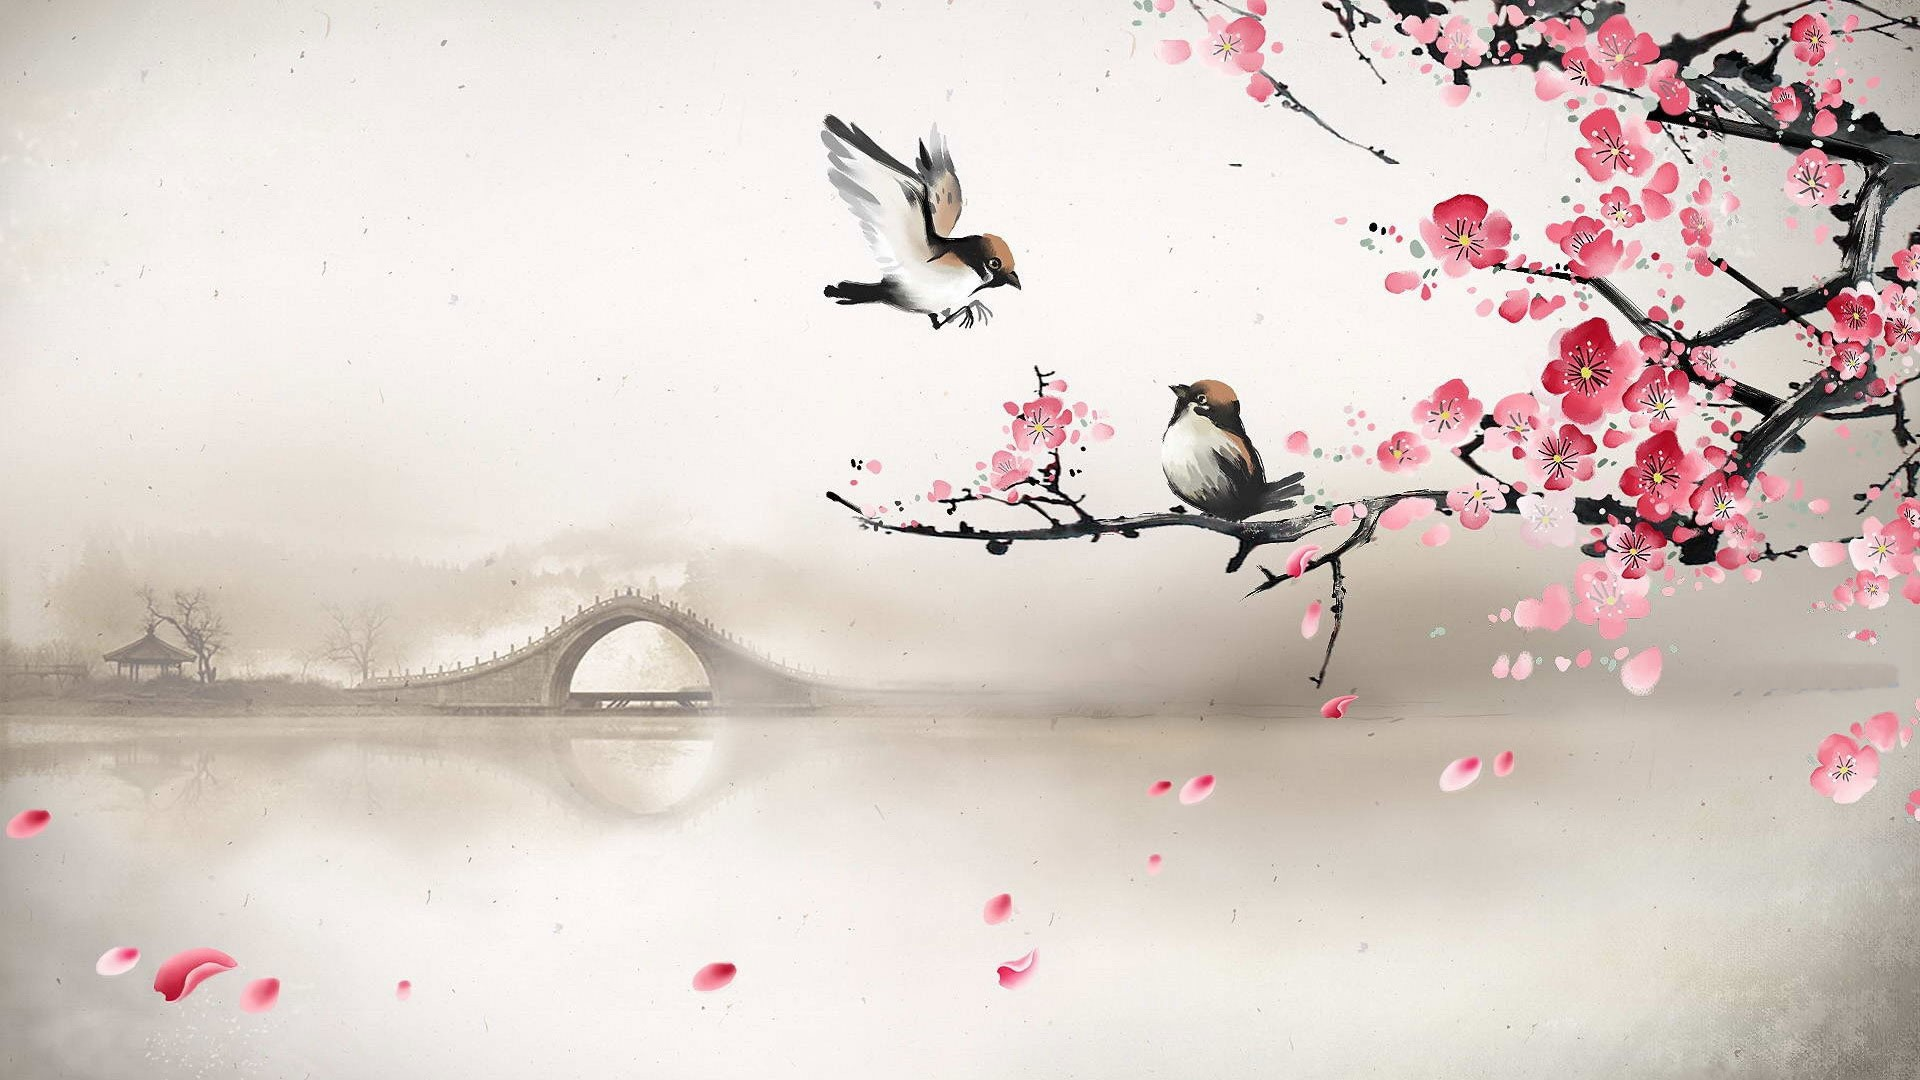 art asian oriental flowers blossom bridges wallpaper  x, Beautiful flower